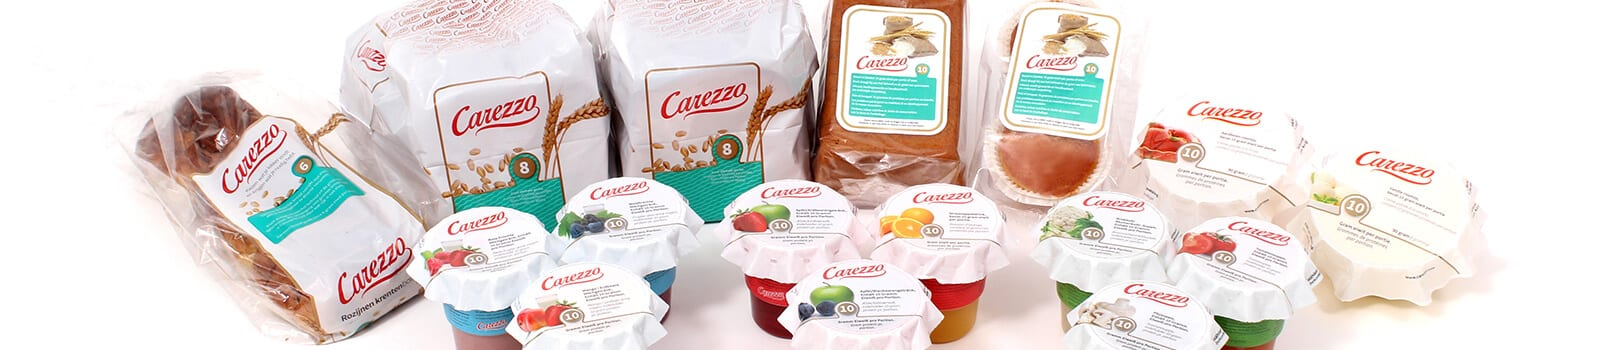 Précon supports Carezzo Nutrition start-up